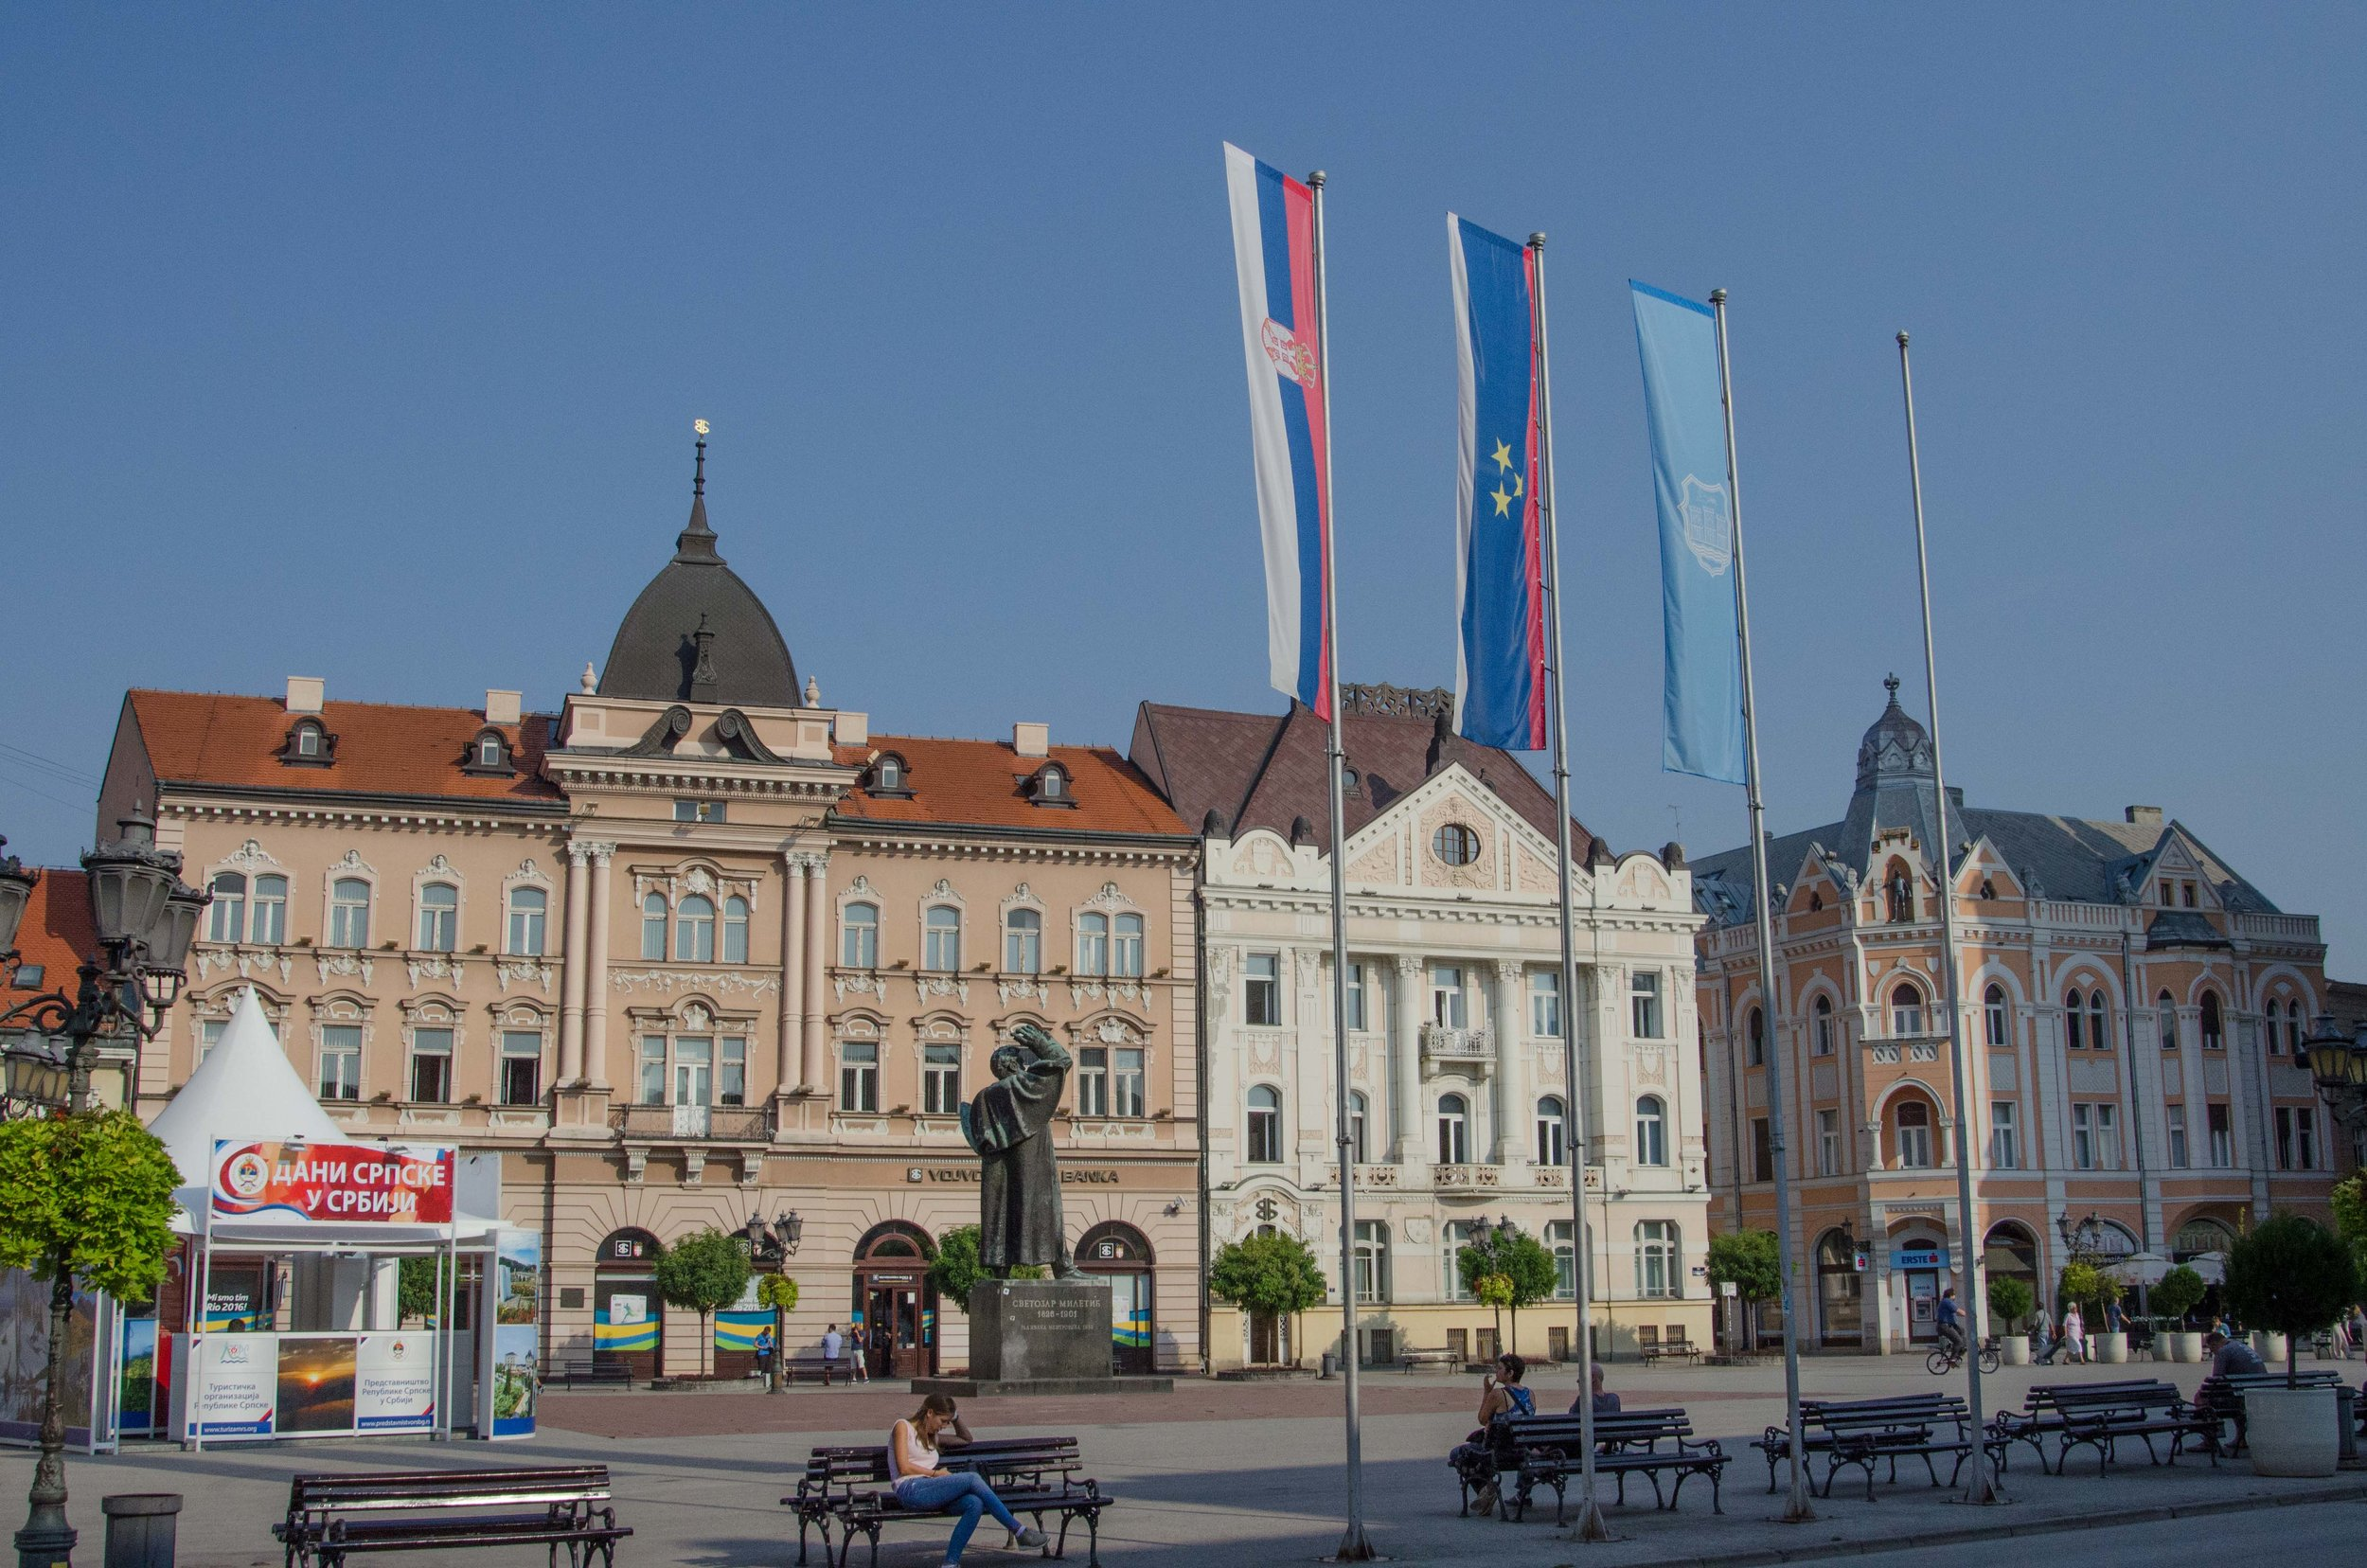 Old town square, Novi Sad